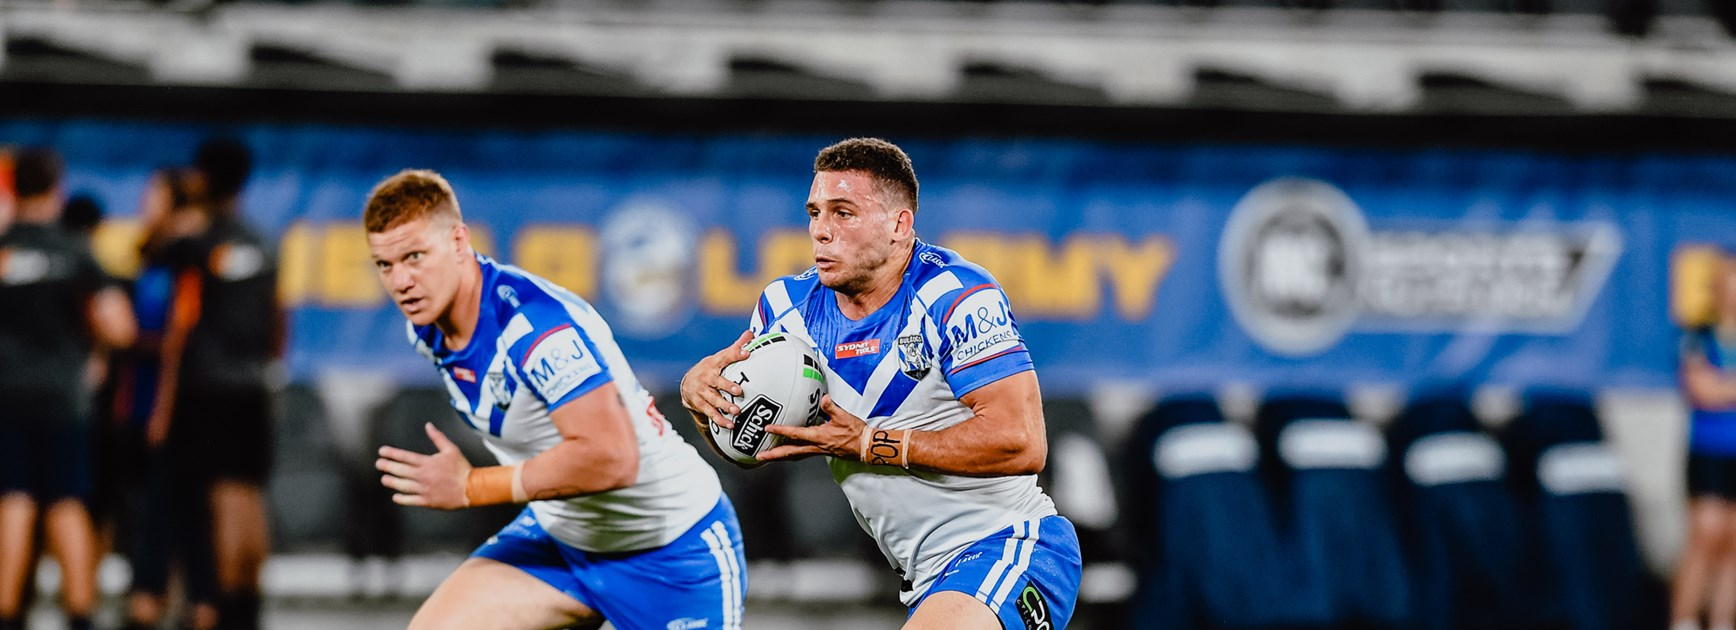 Rivalries and intrigue headline round three draw for NRL restart